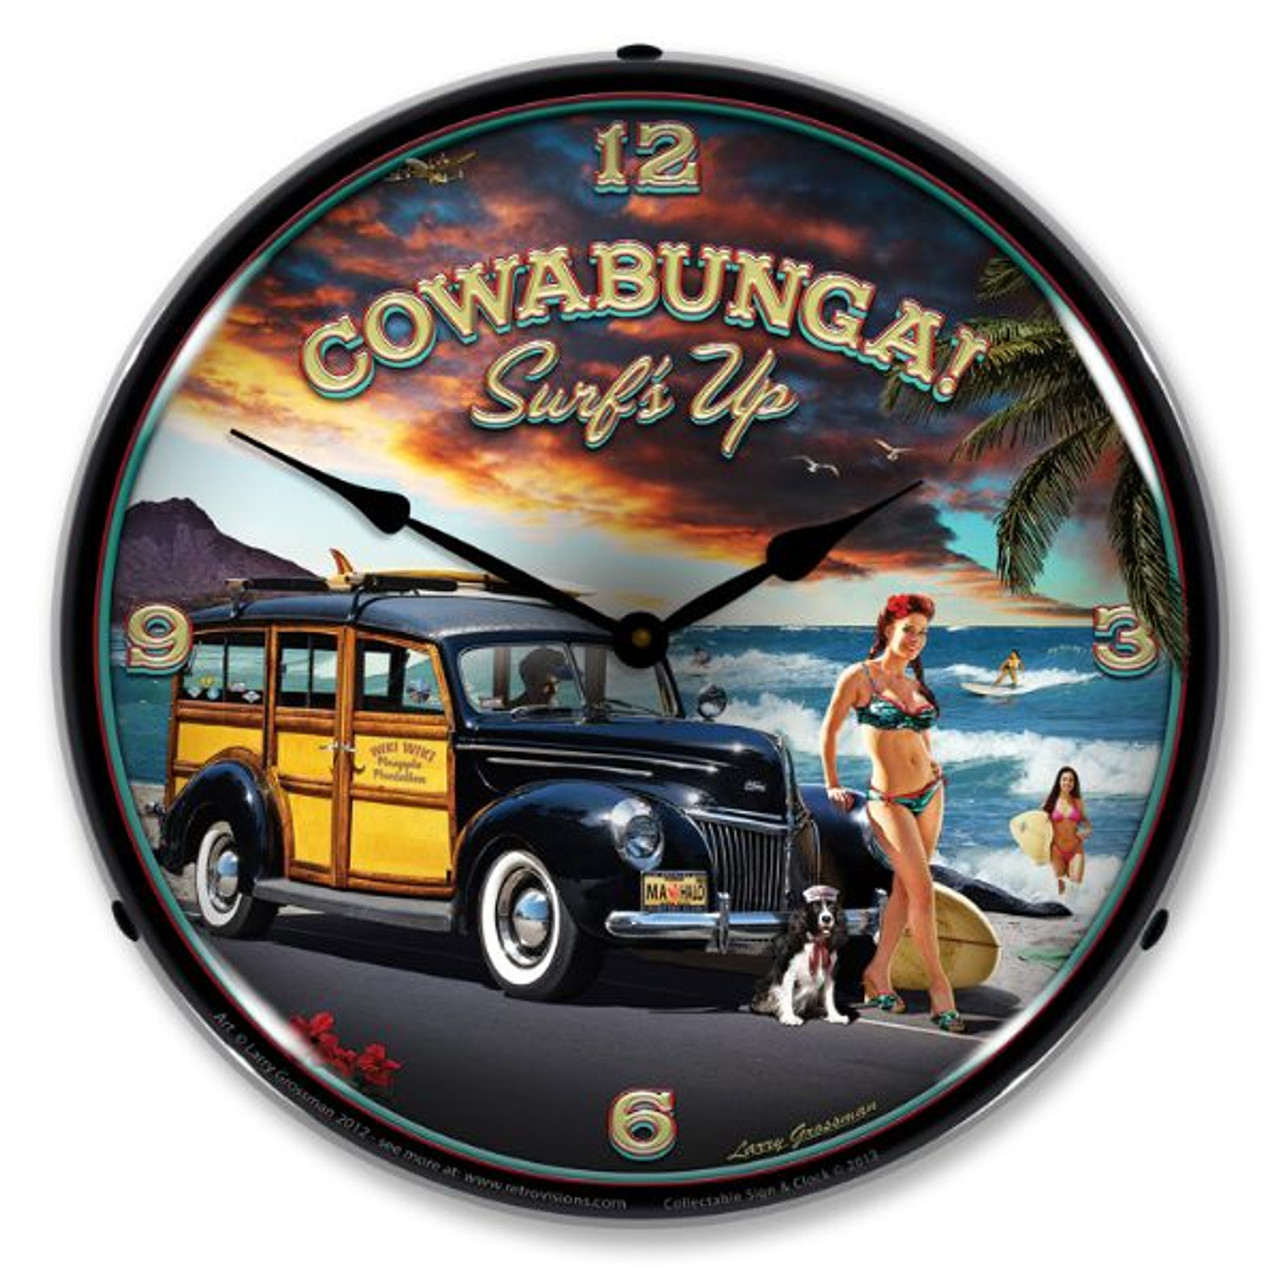 Cowabunga Lighted Wall Clock 14 x 14 Inches